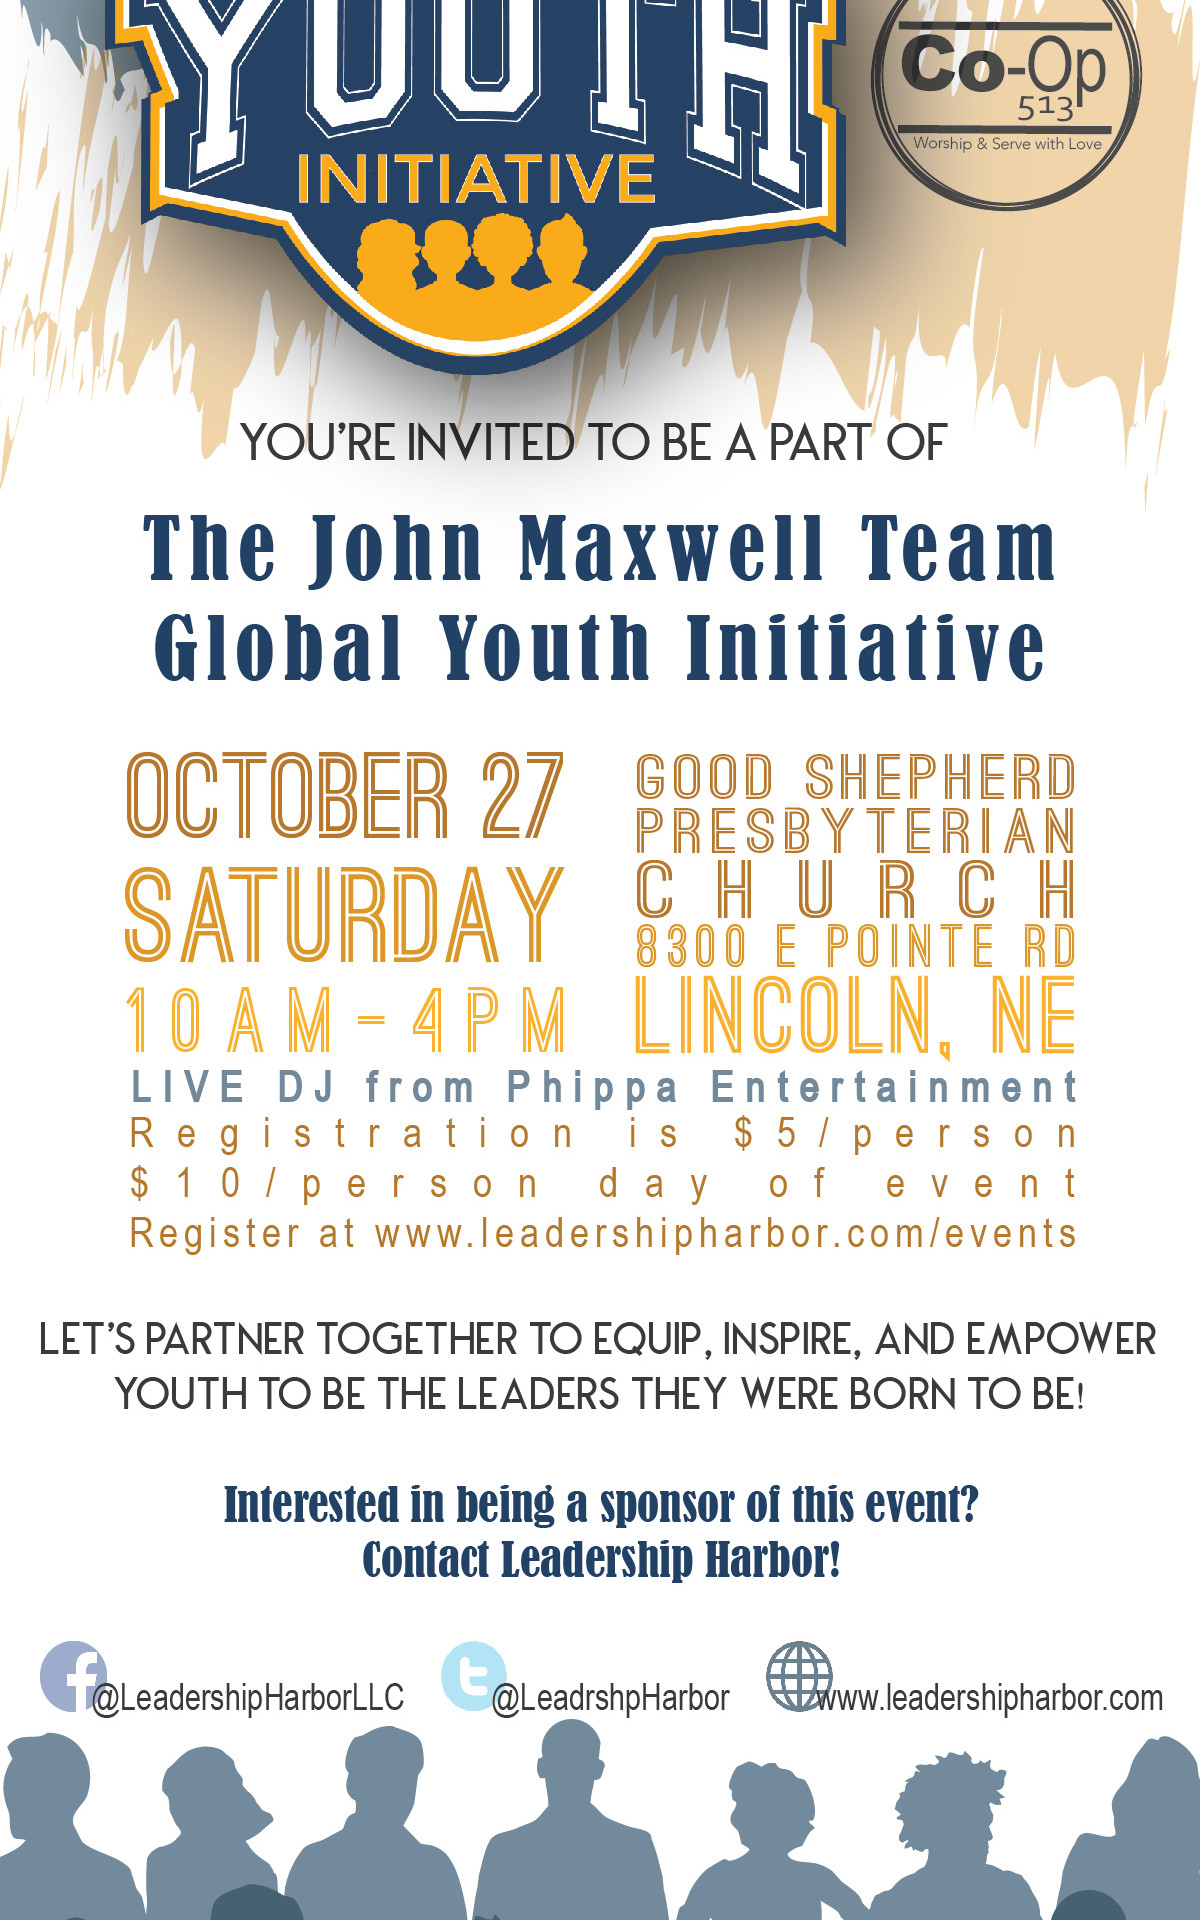 Rack card designed for a youth event leadership harbor sponsored.